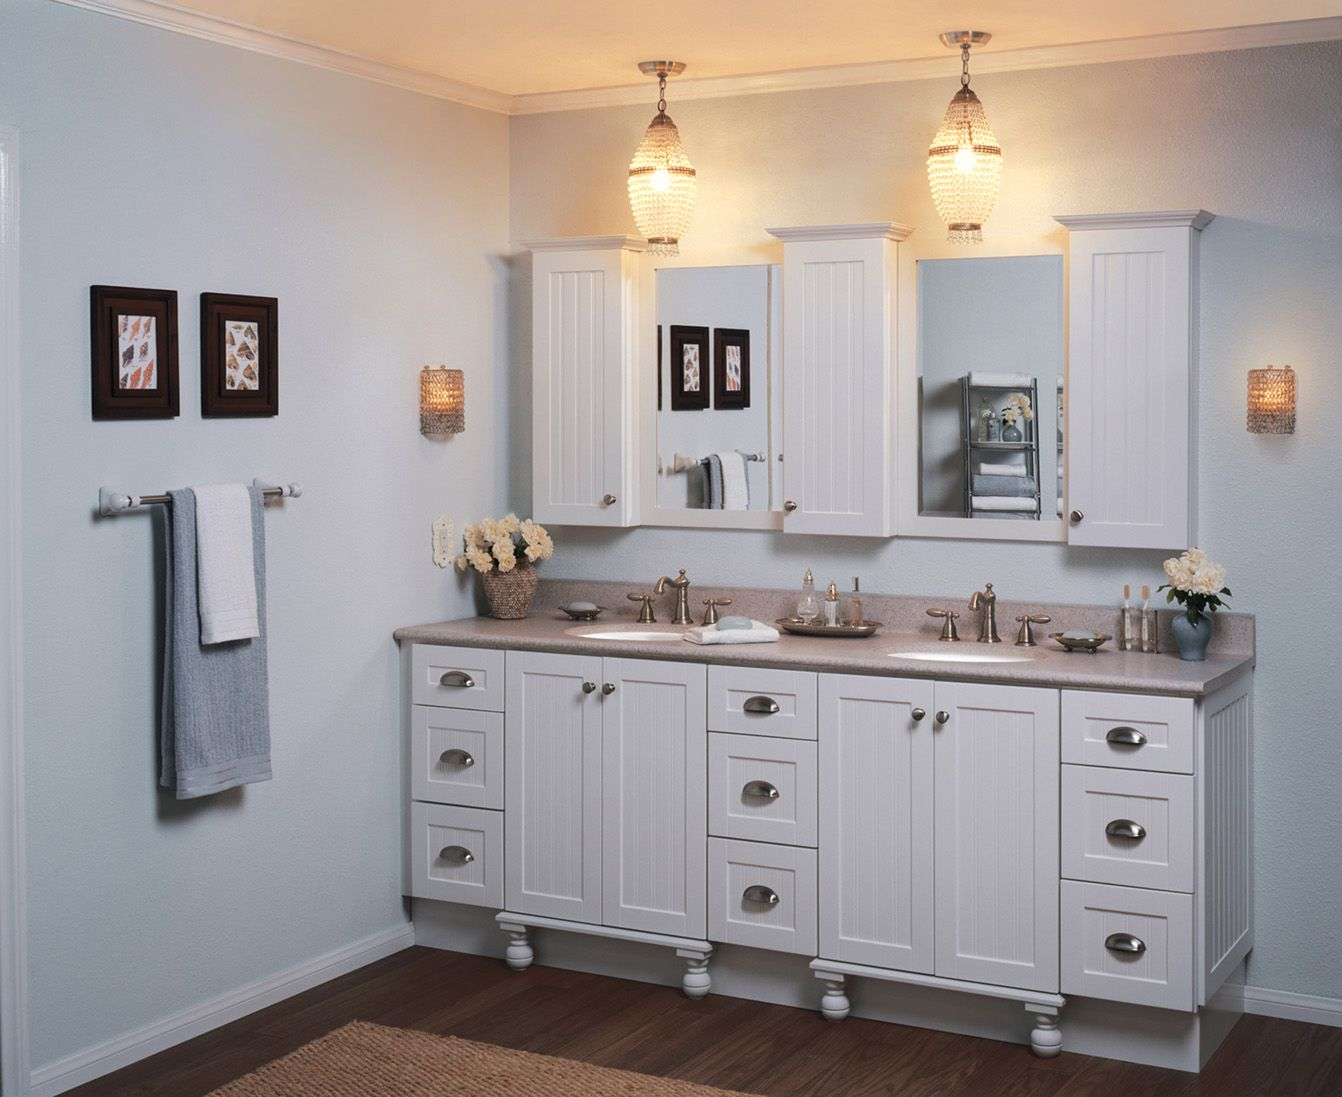 Traditional white bathroom ideas - Elegant Bathroom Vanity Decorated With White Color Design Made From Wooden Material And Small Traditional Bathroom